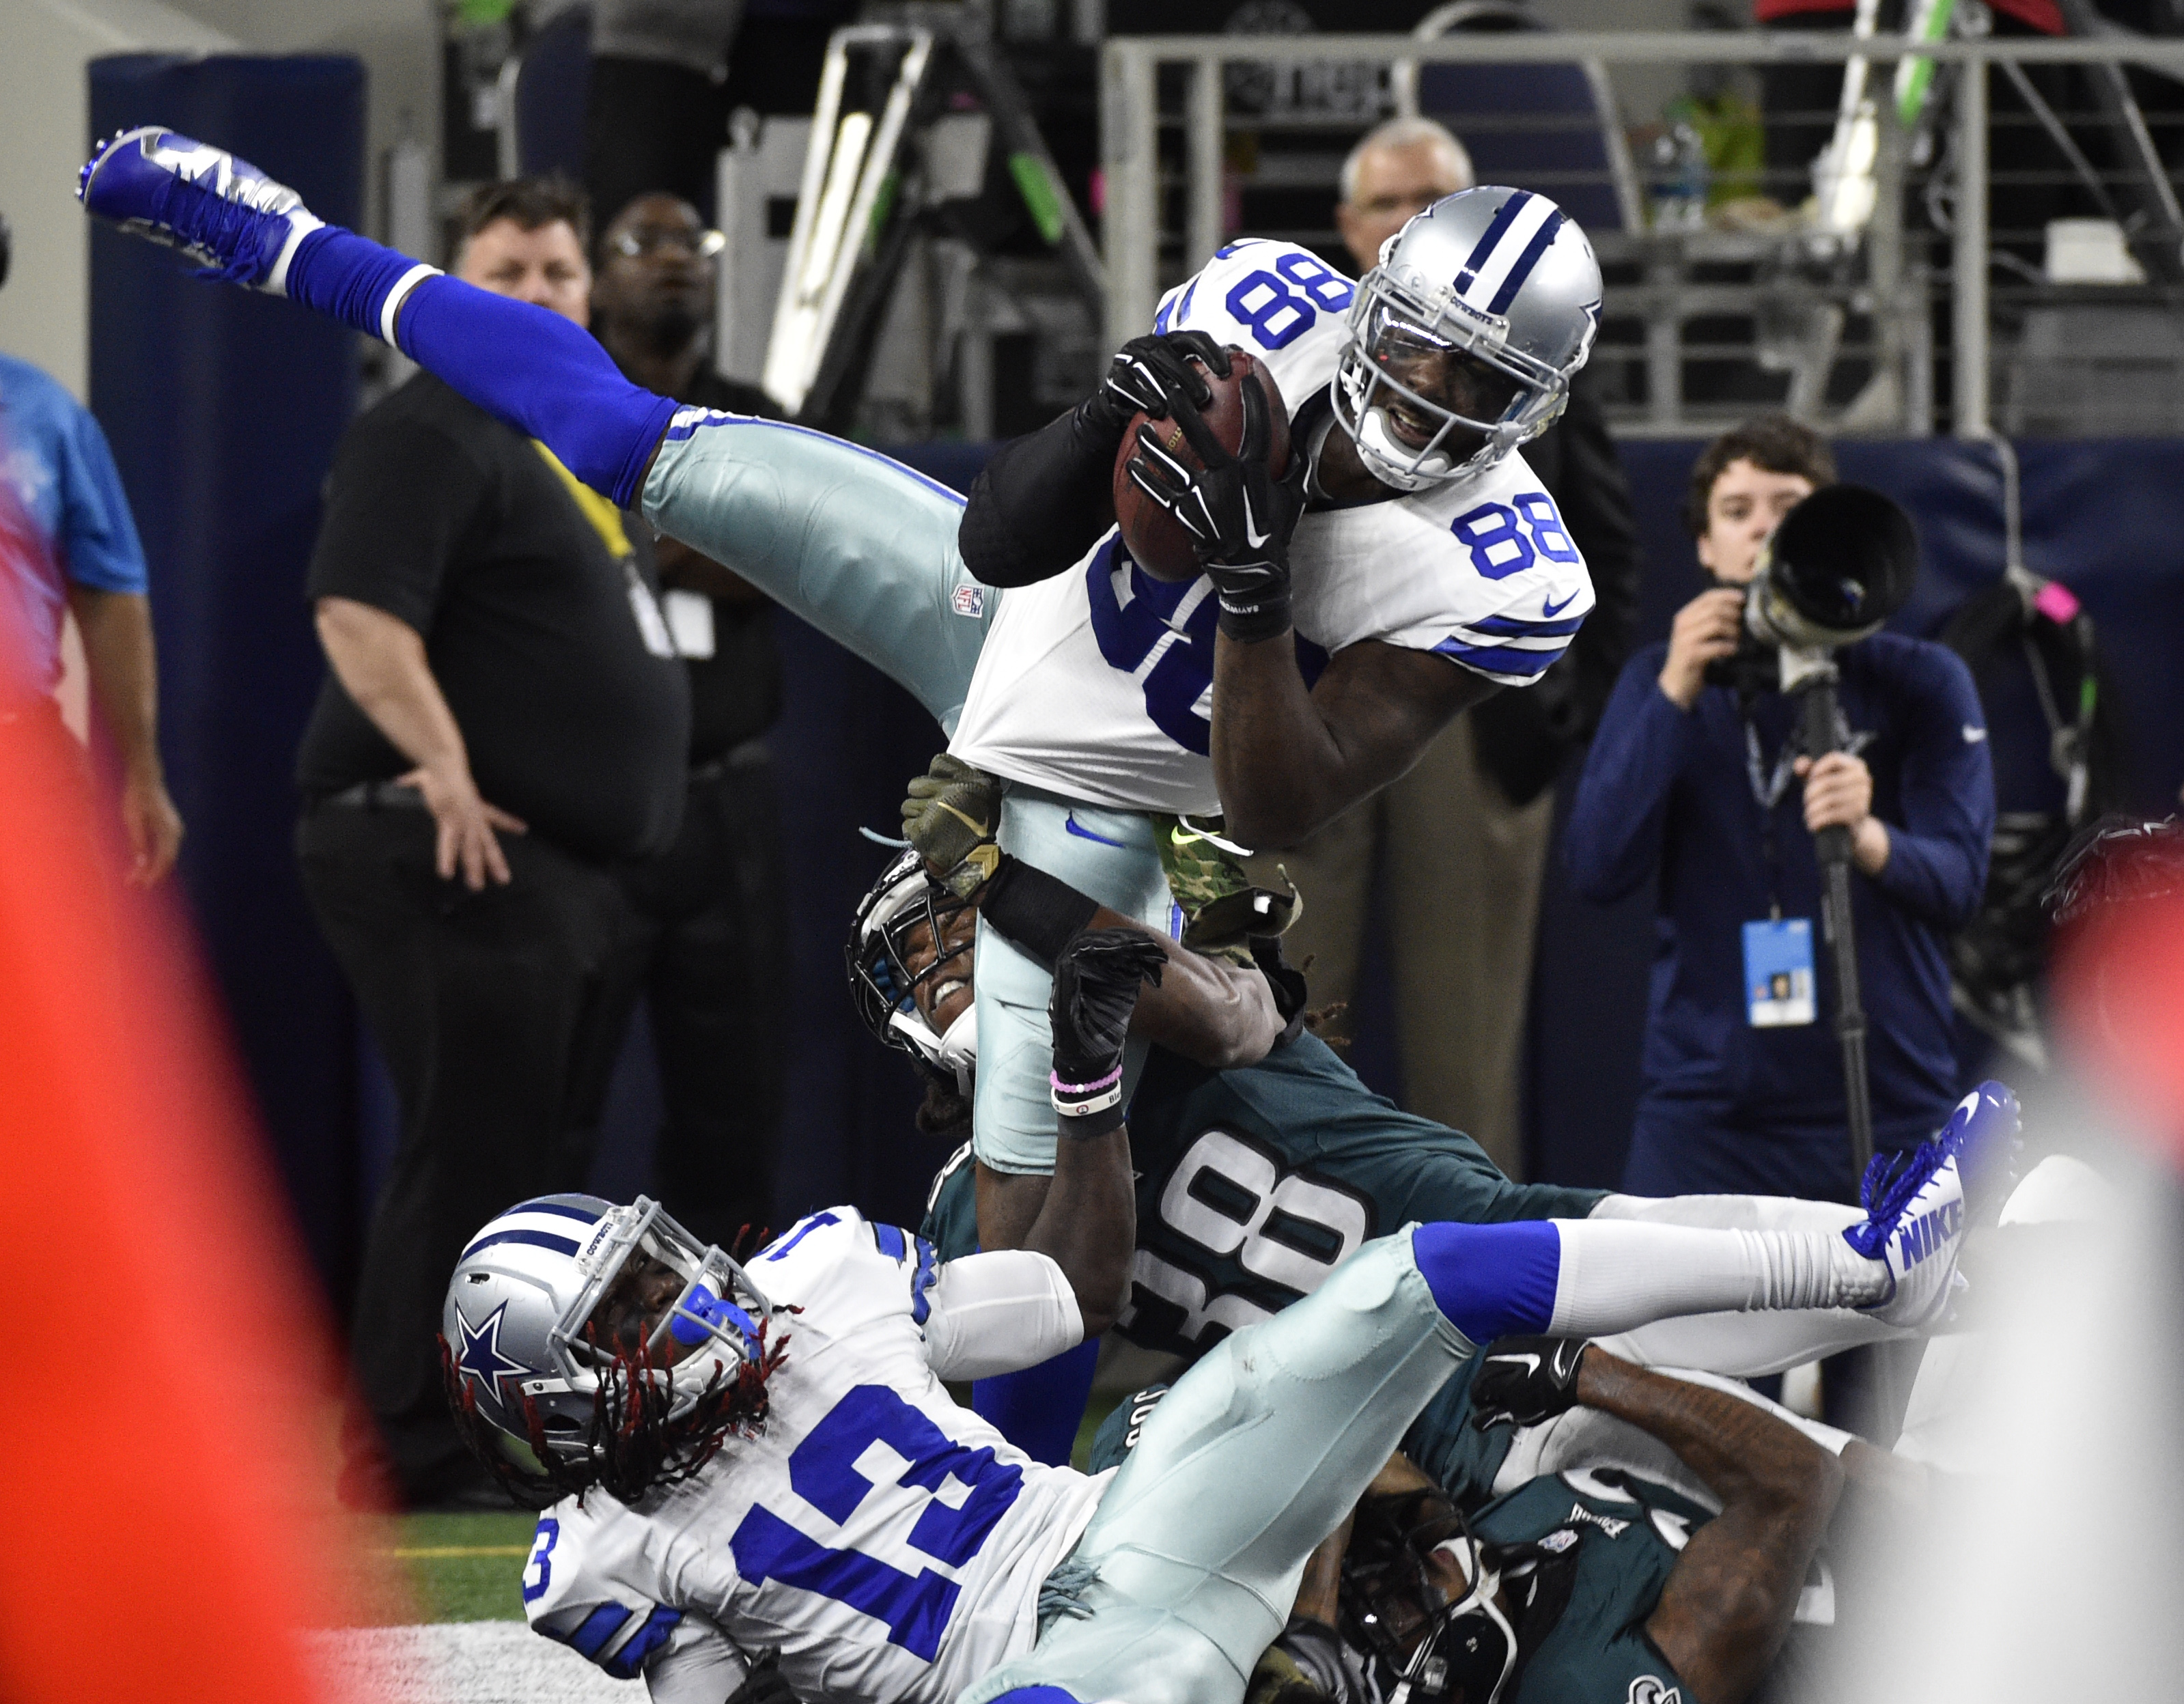 Dallas Cowboys' Dez Bryant (88) comes down with a touchdown catch over Philadelphia Eagles' E.J. Biggers (38) in the end  zone in the second half of an NFL football game, Sunday, Nov. 8, 2015, in Arlington, Texas. The Cowboy's Lucky Whitehead (13) and oth